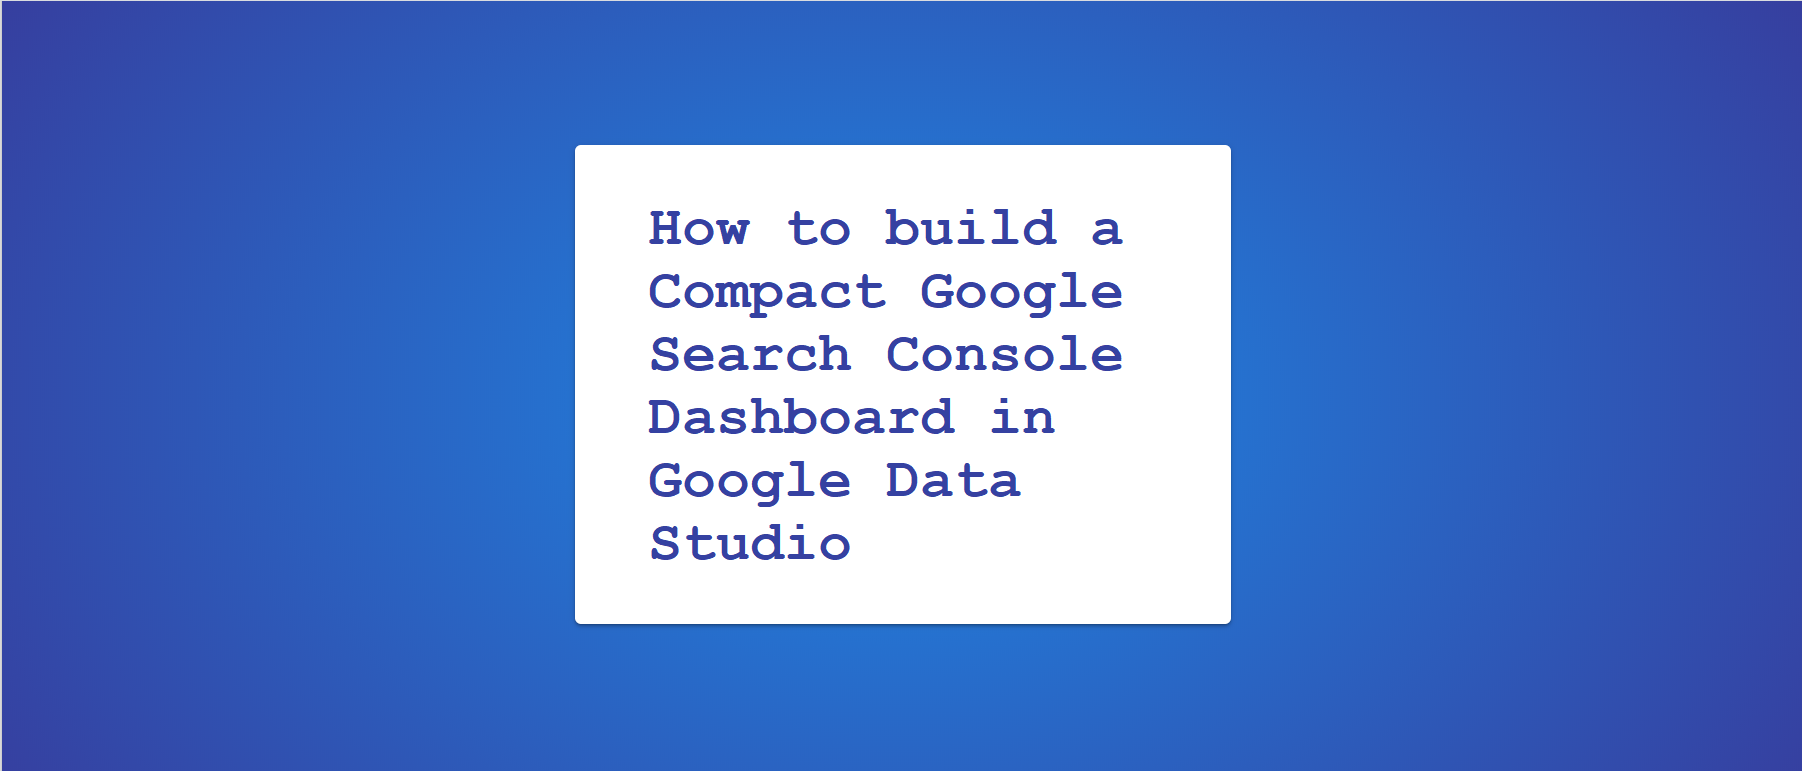 How to build a compact Google Search Console Dashboard in Google Data Studio